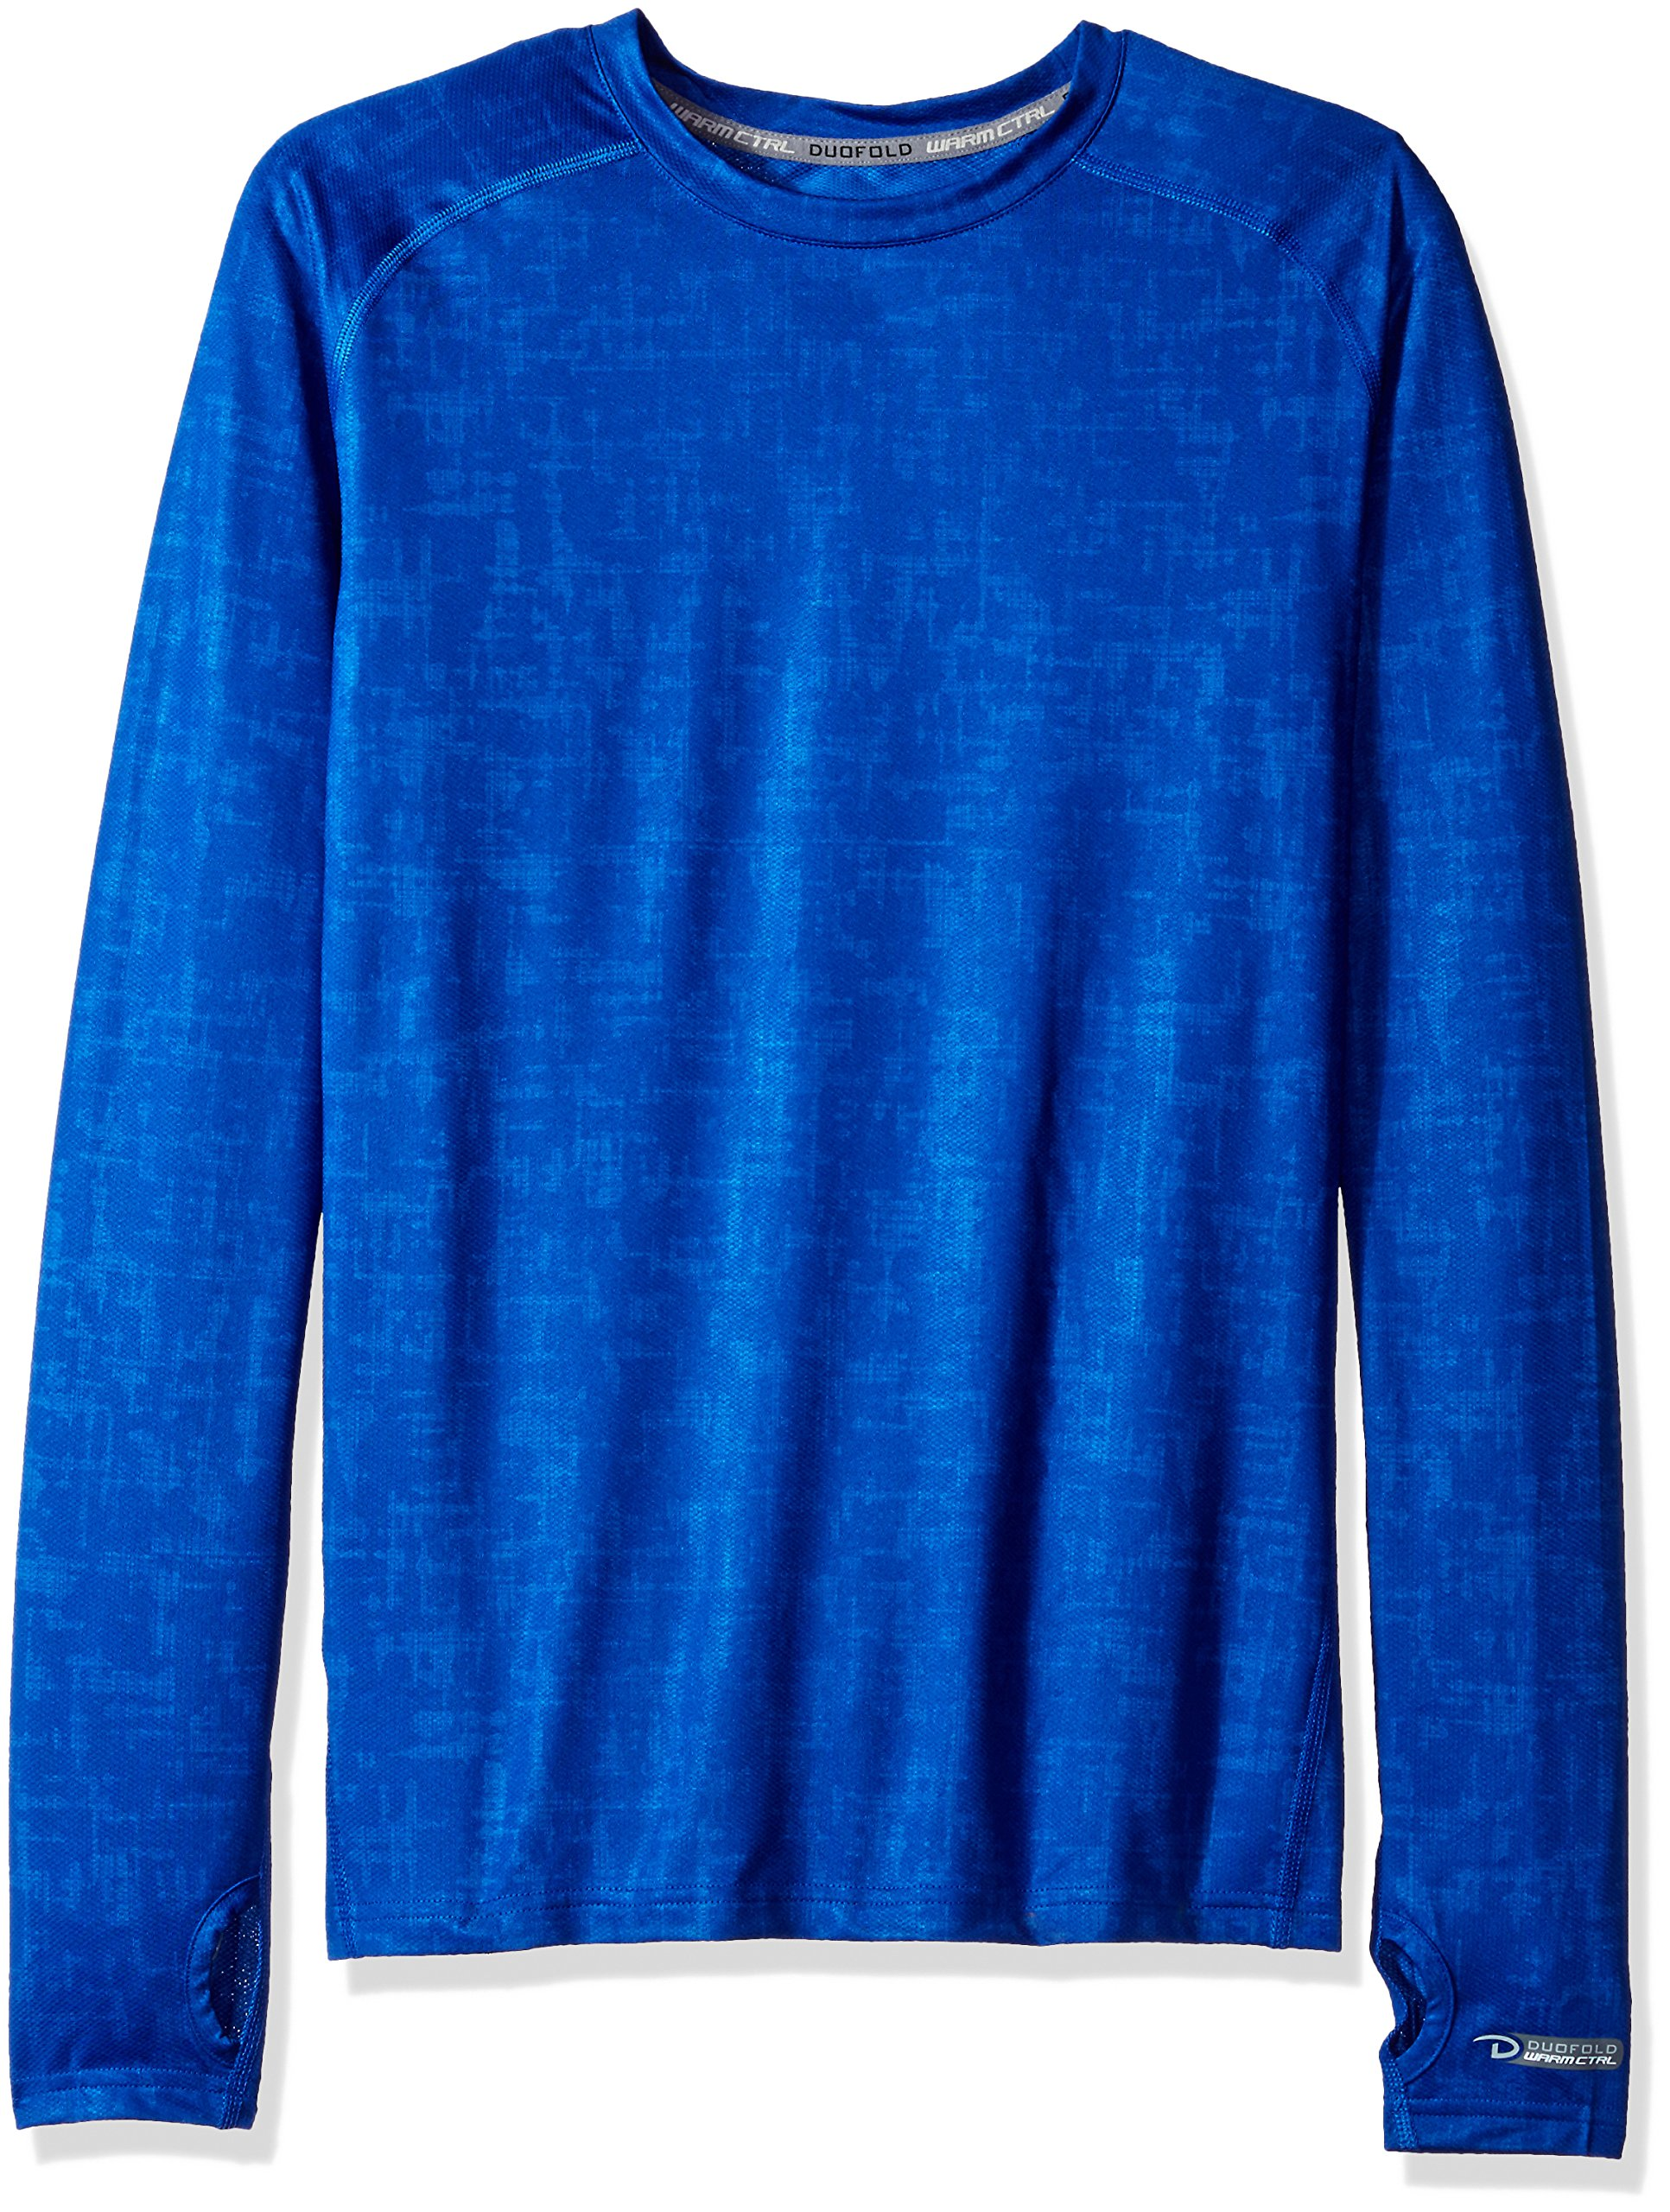 Duofold Men's Light Weight Thermatrix Performance Thermal Shirt, Surf The Web Glitch Texture, L